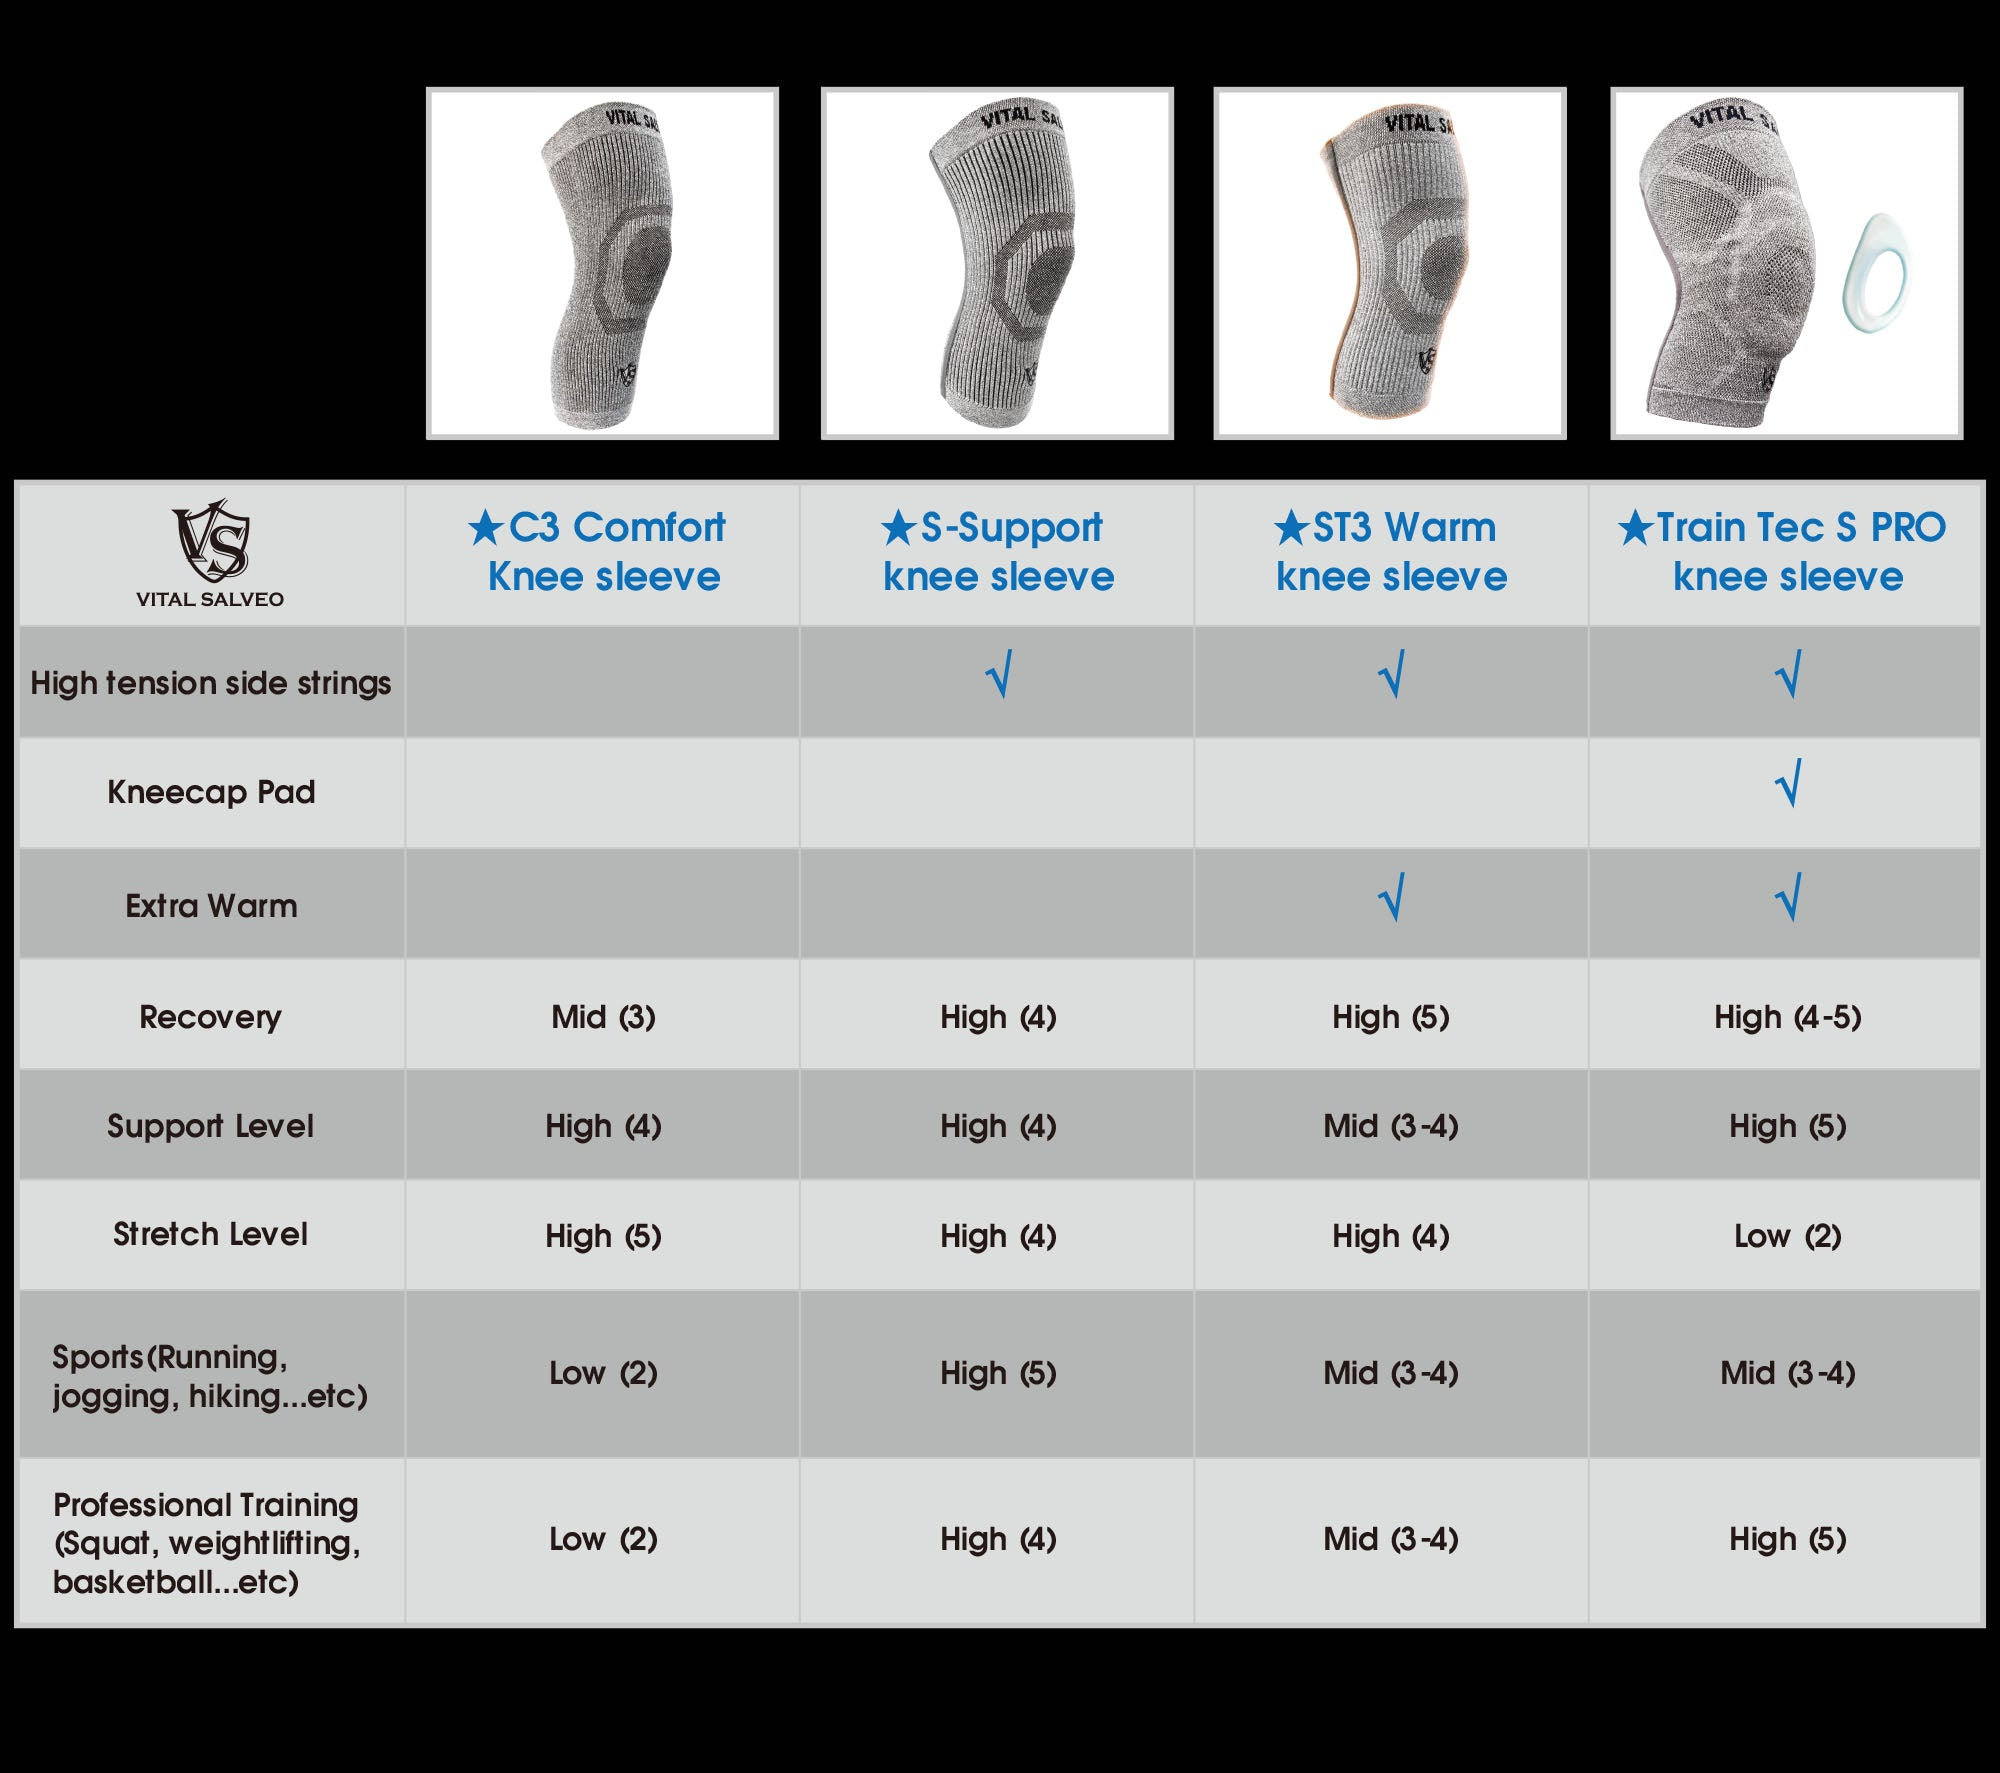 compression knee sleeves different types of each differences